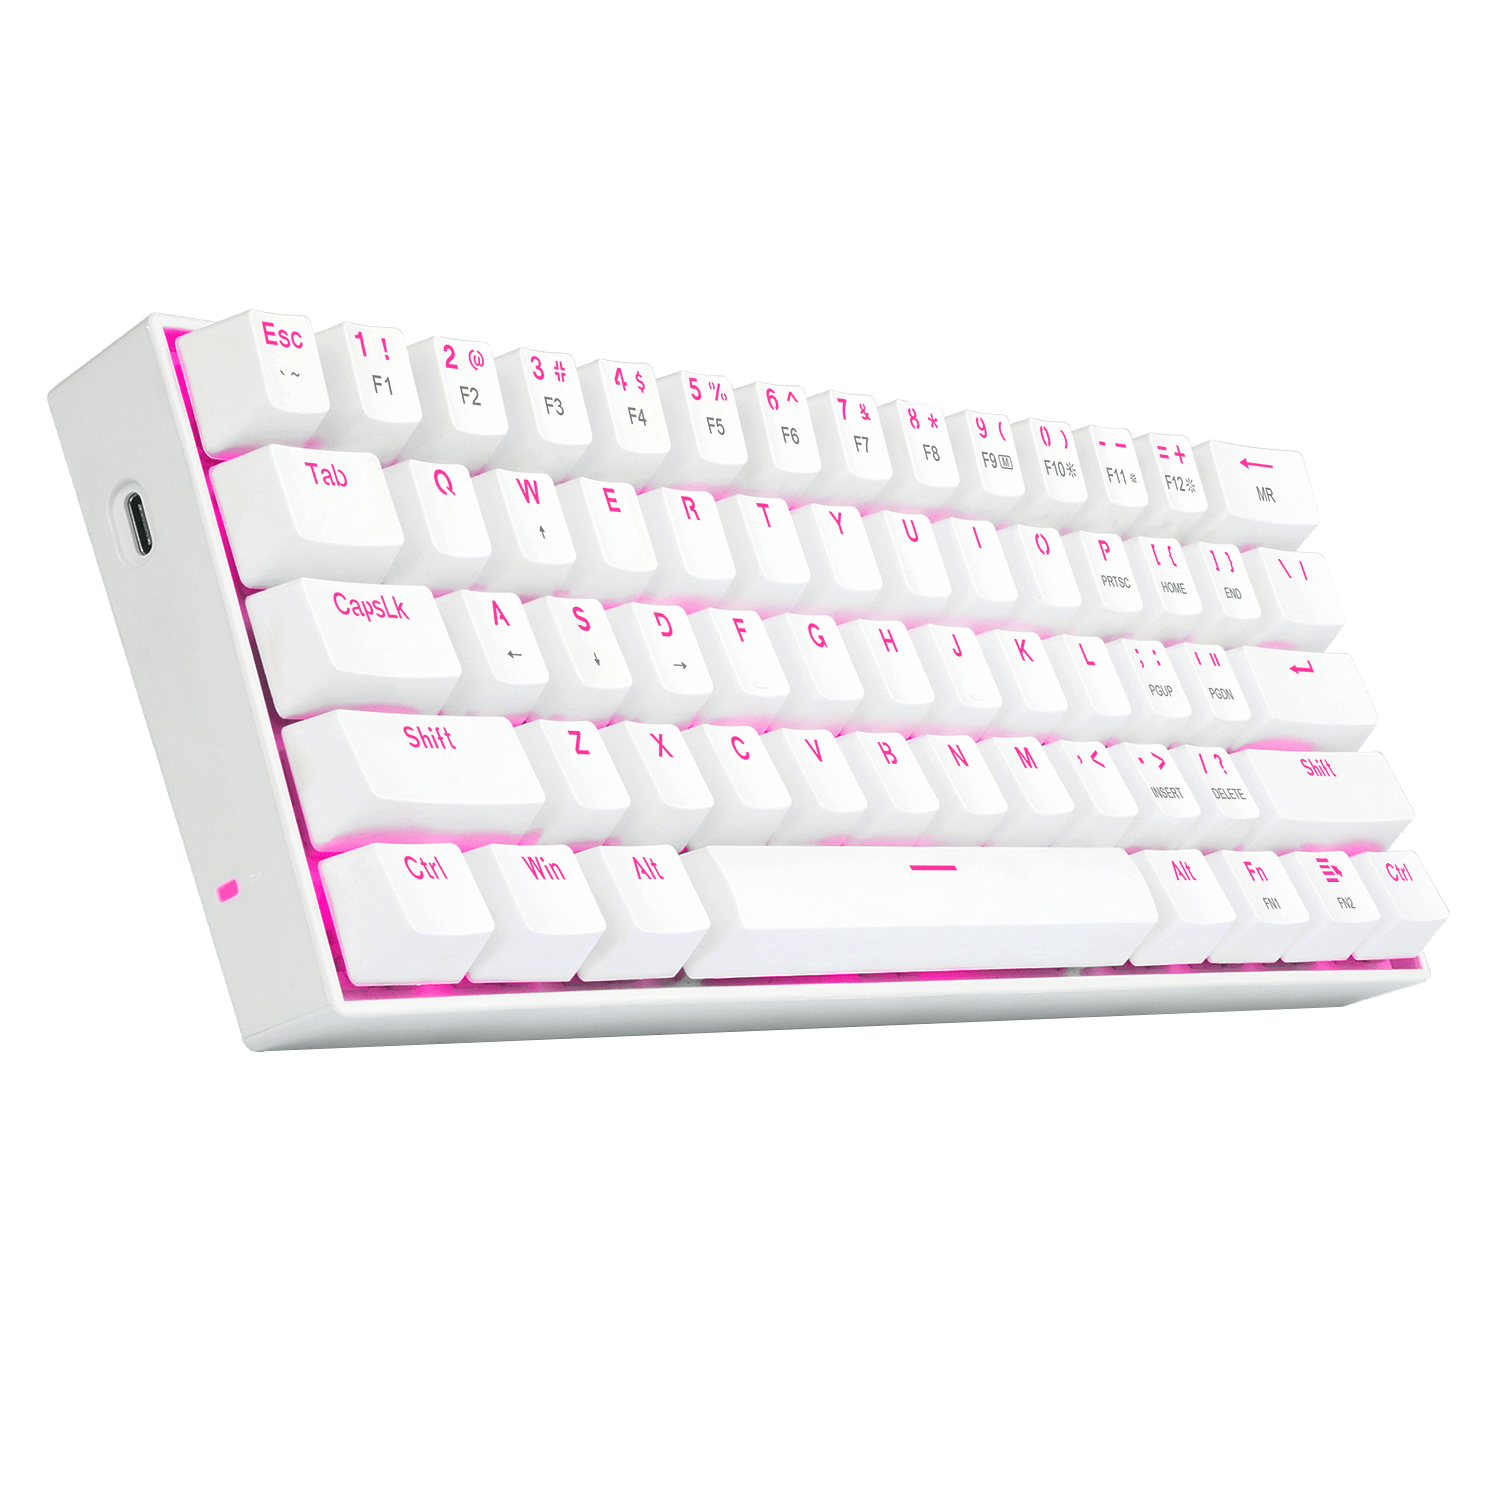 60 gaming keyboard